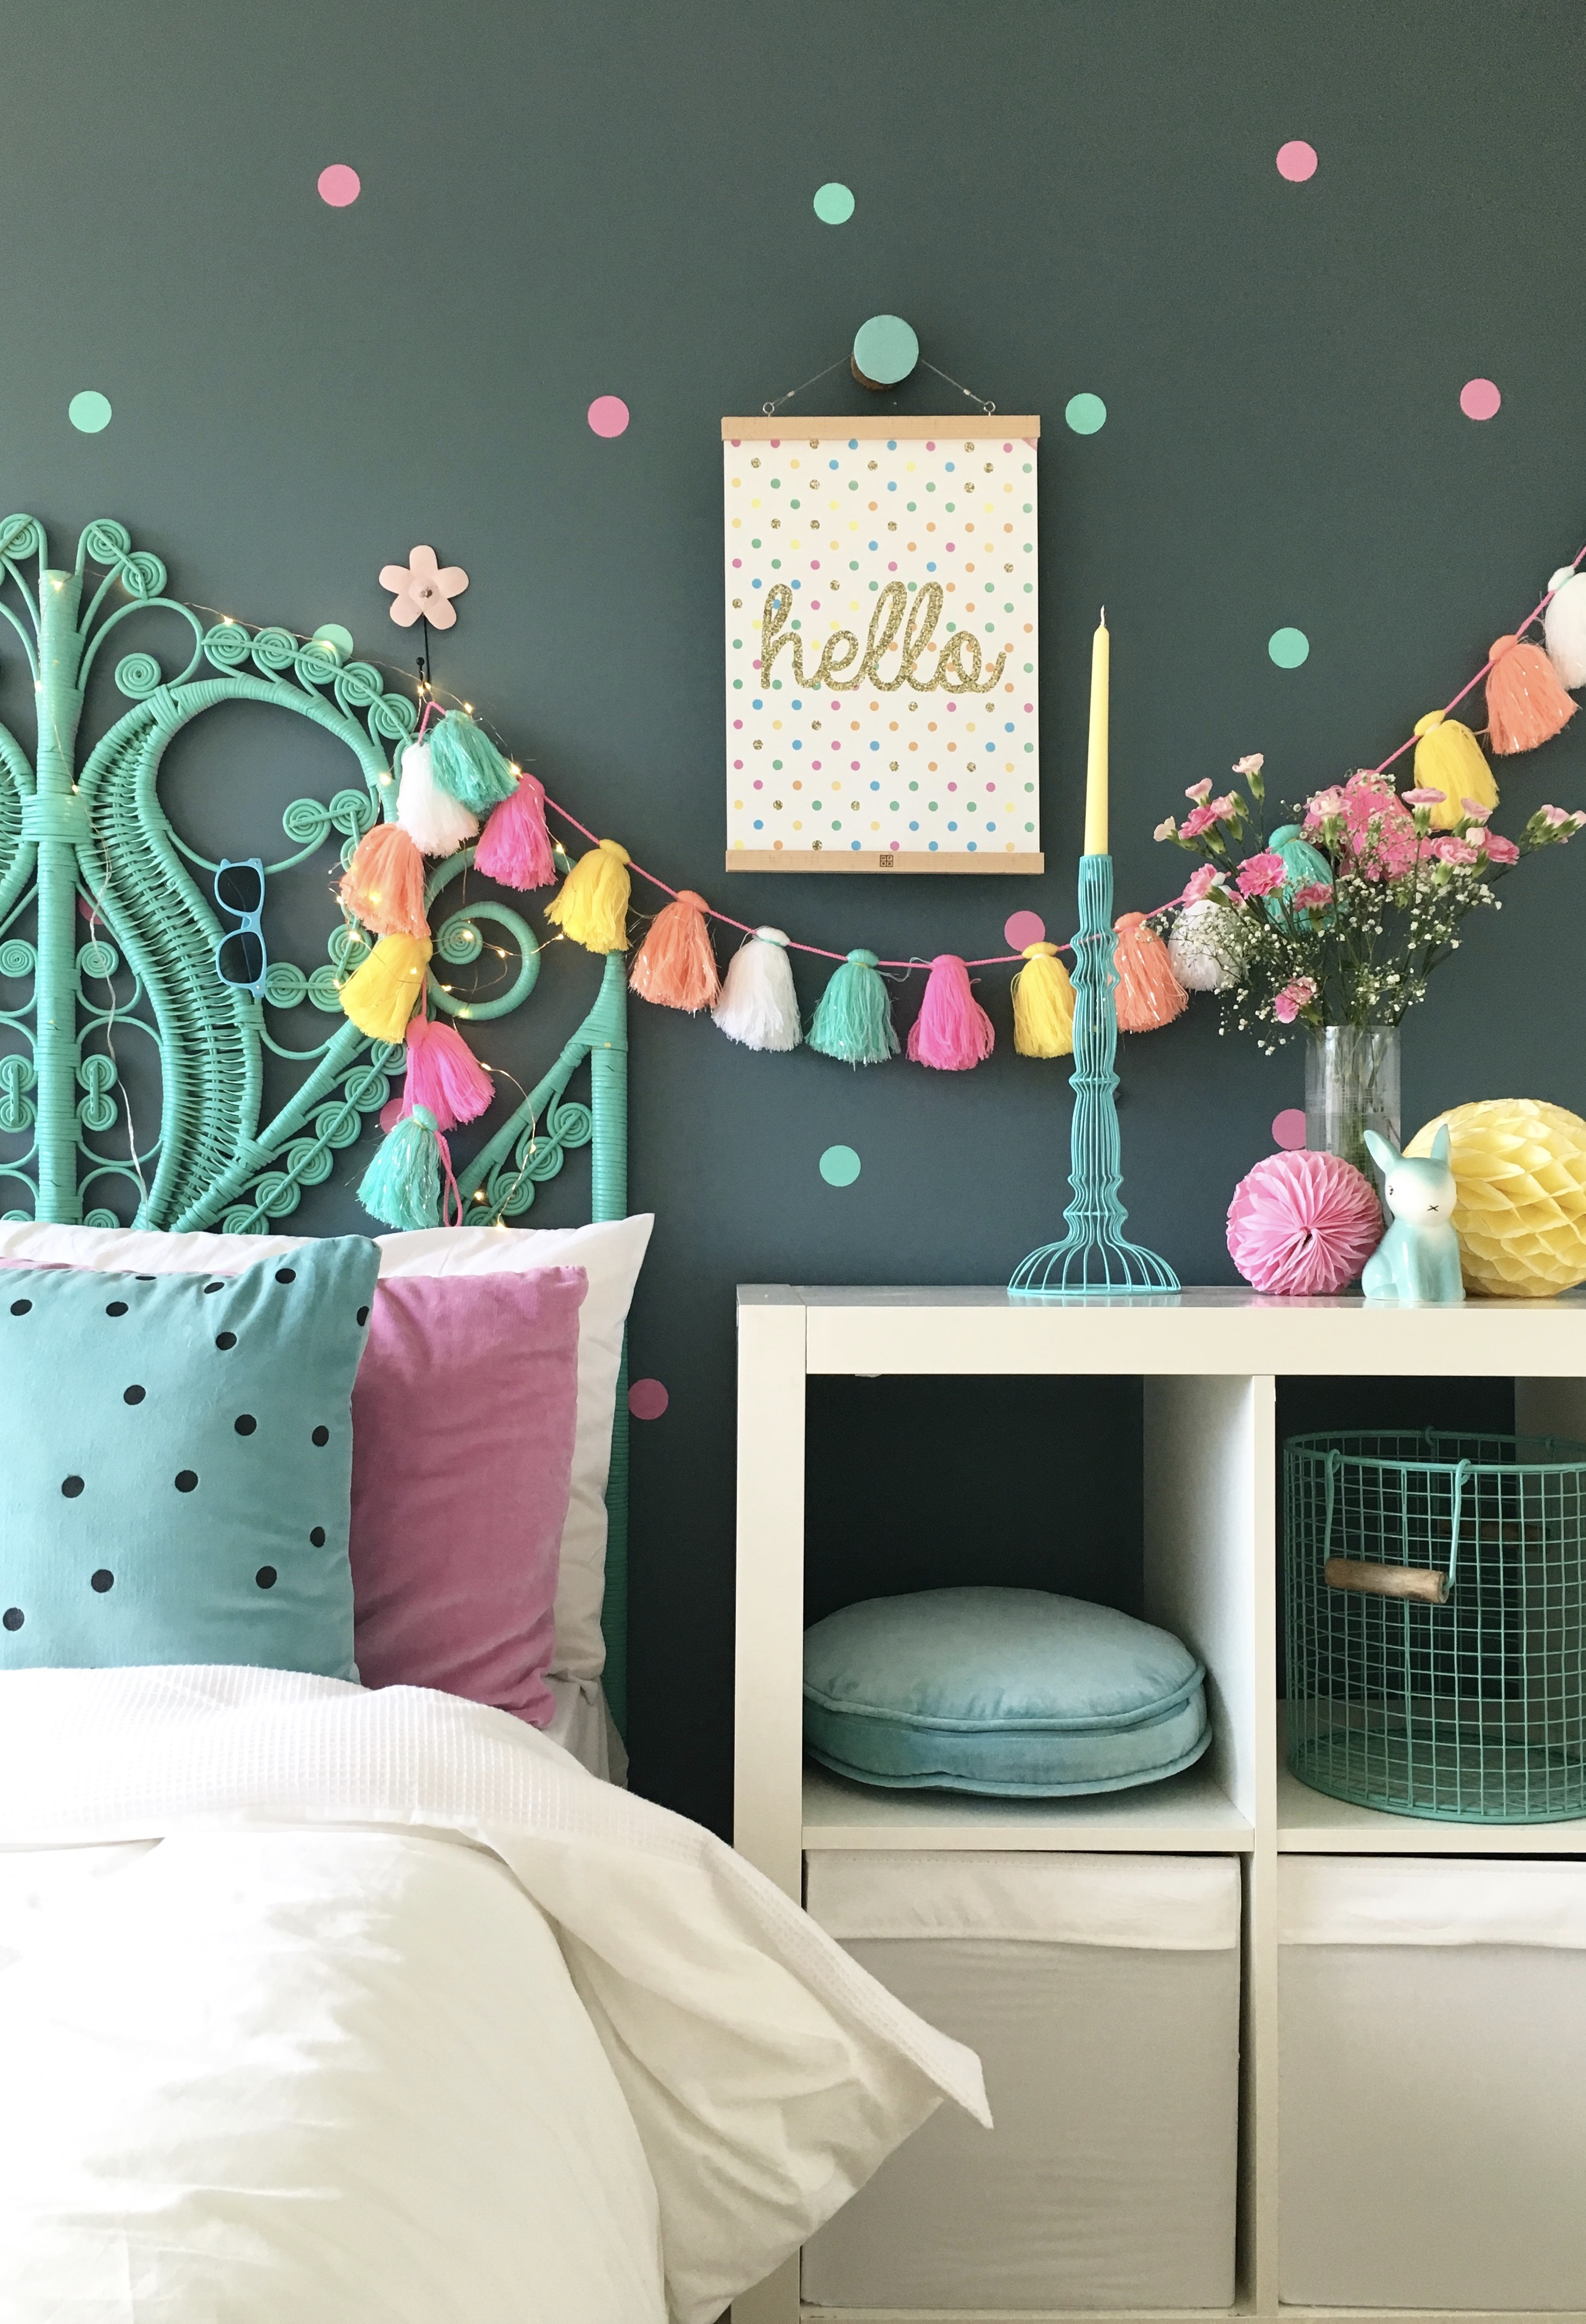 Bedroom and Interior Inspiration for kids – my daughter Summer's bedroom